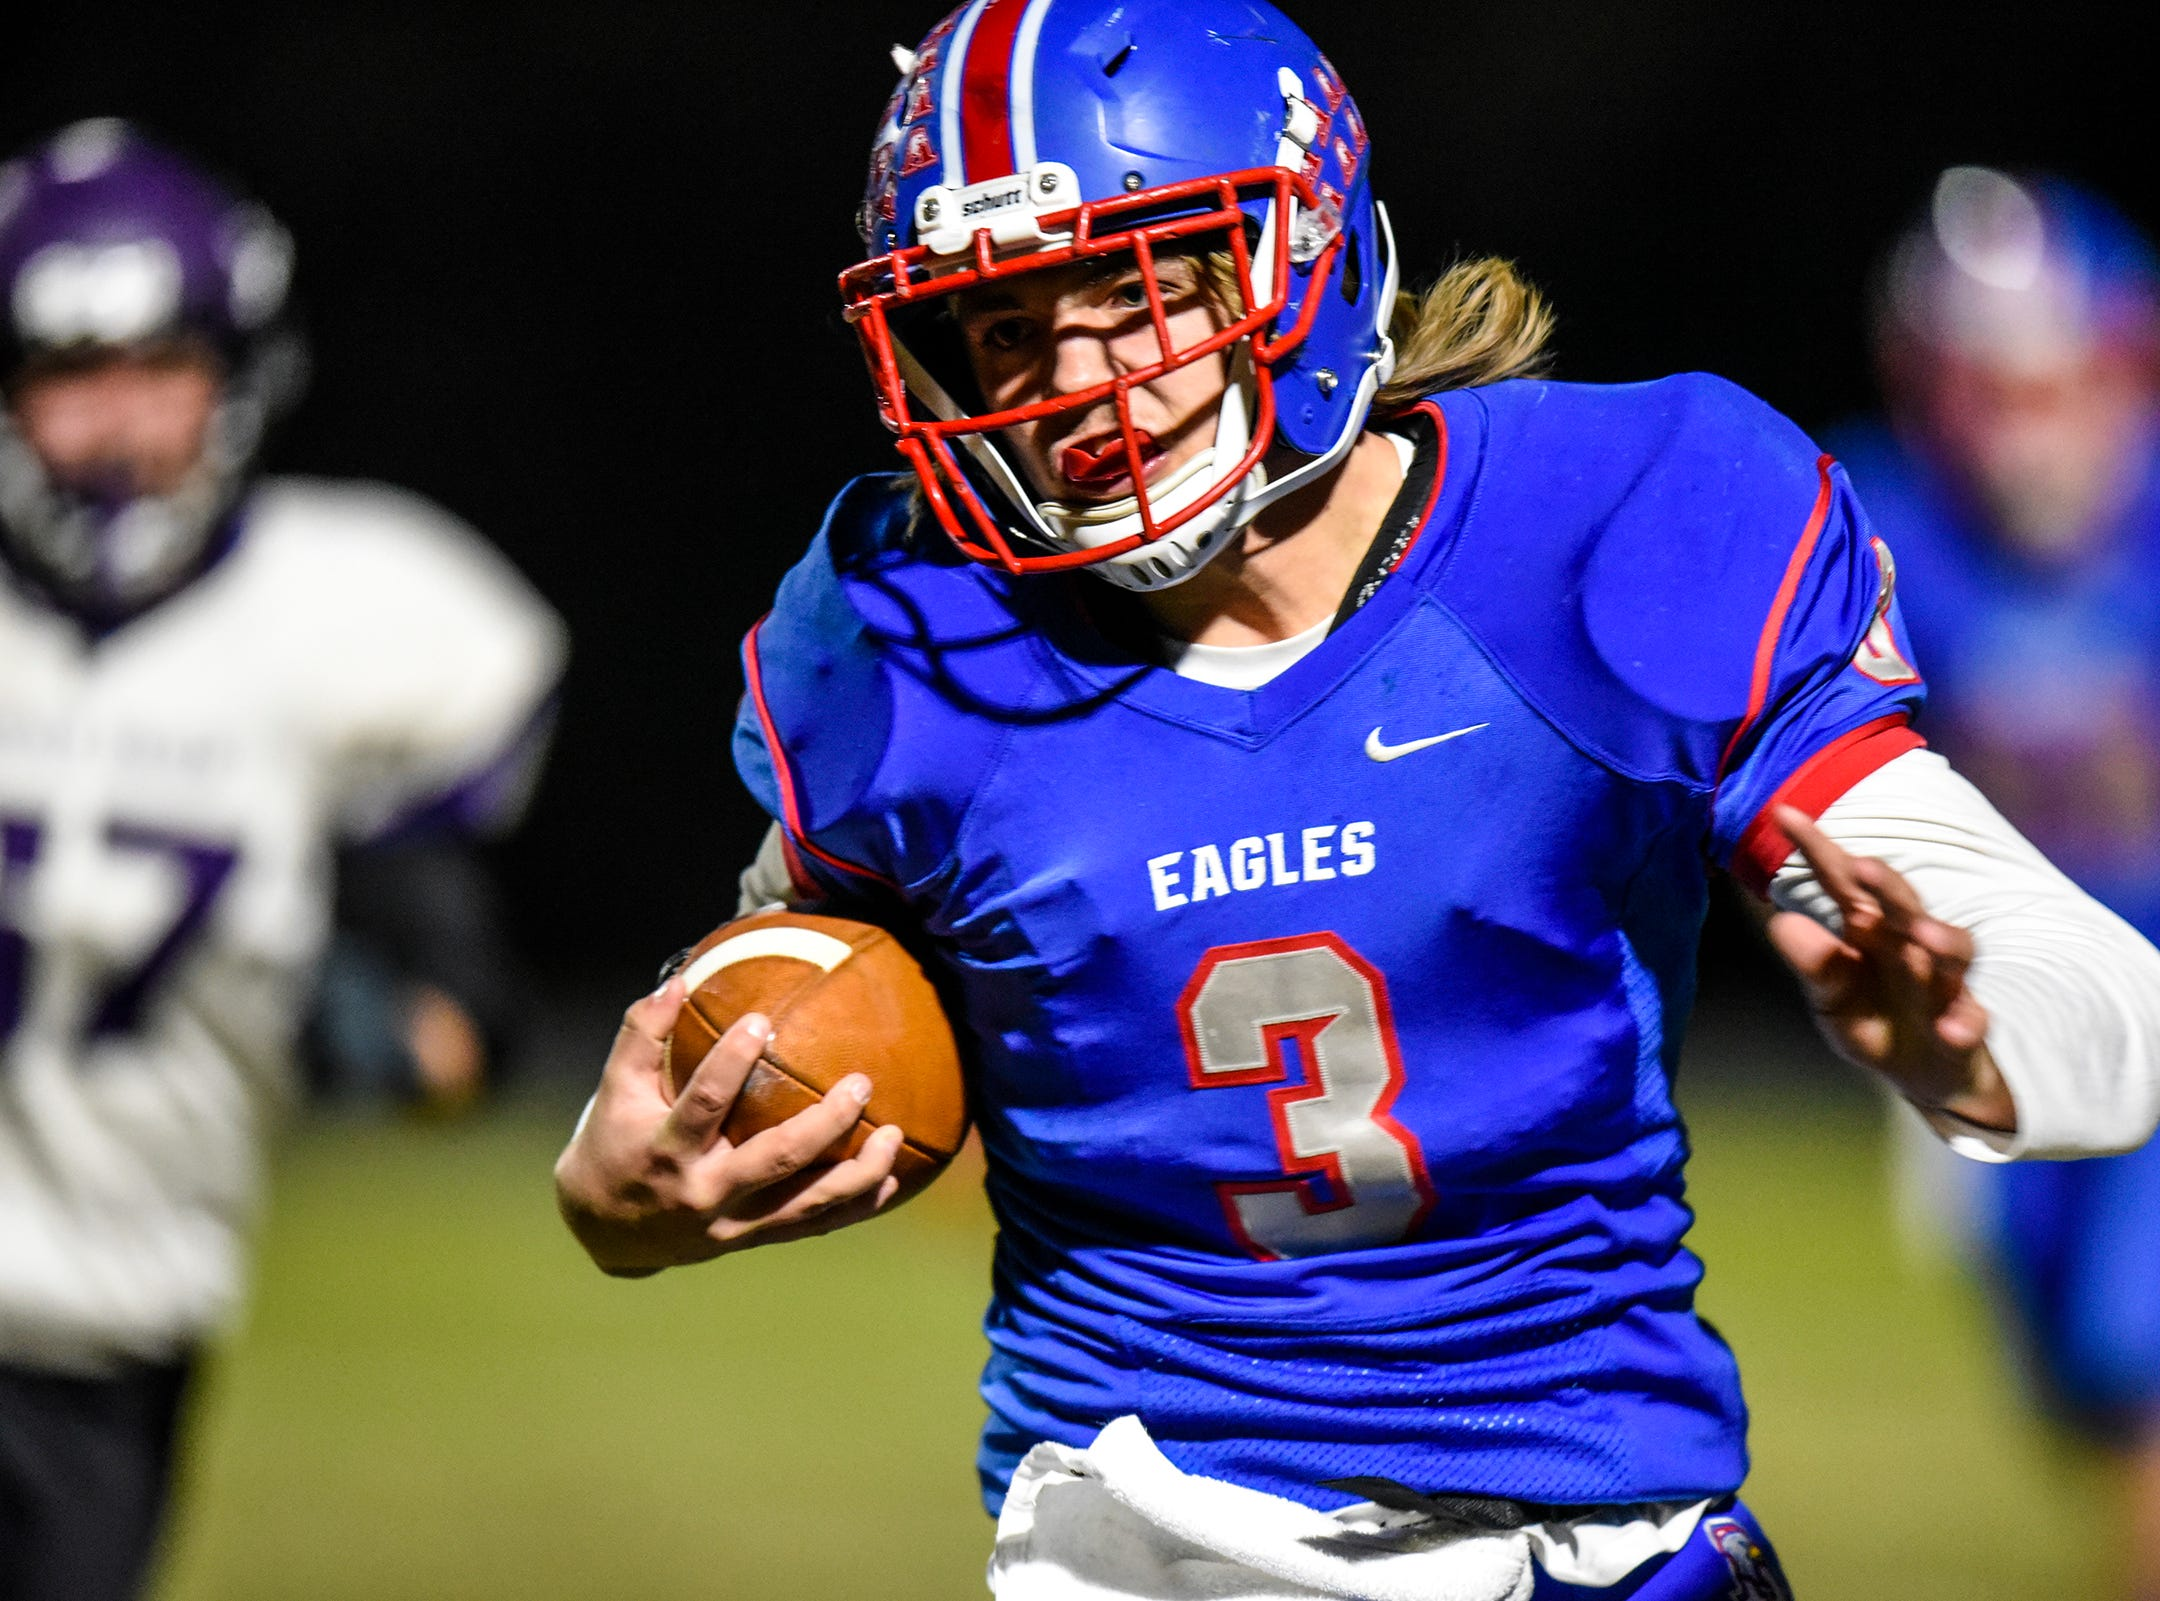 Apollo's Logan Johnson carries the ball during the Tuesday, Oct. 23, game against Little Falls in St. Cloud.